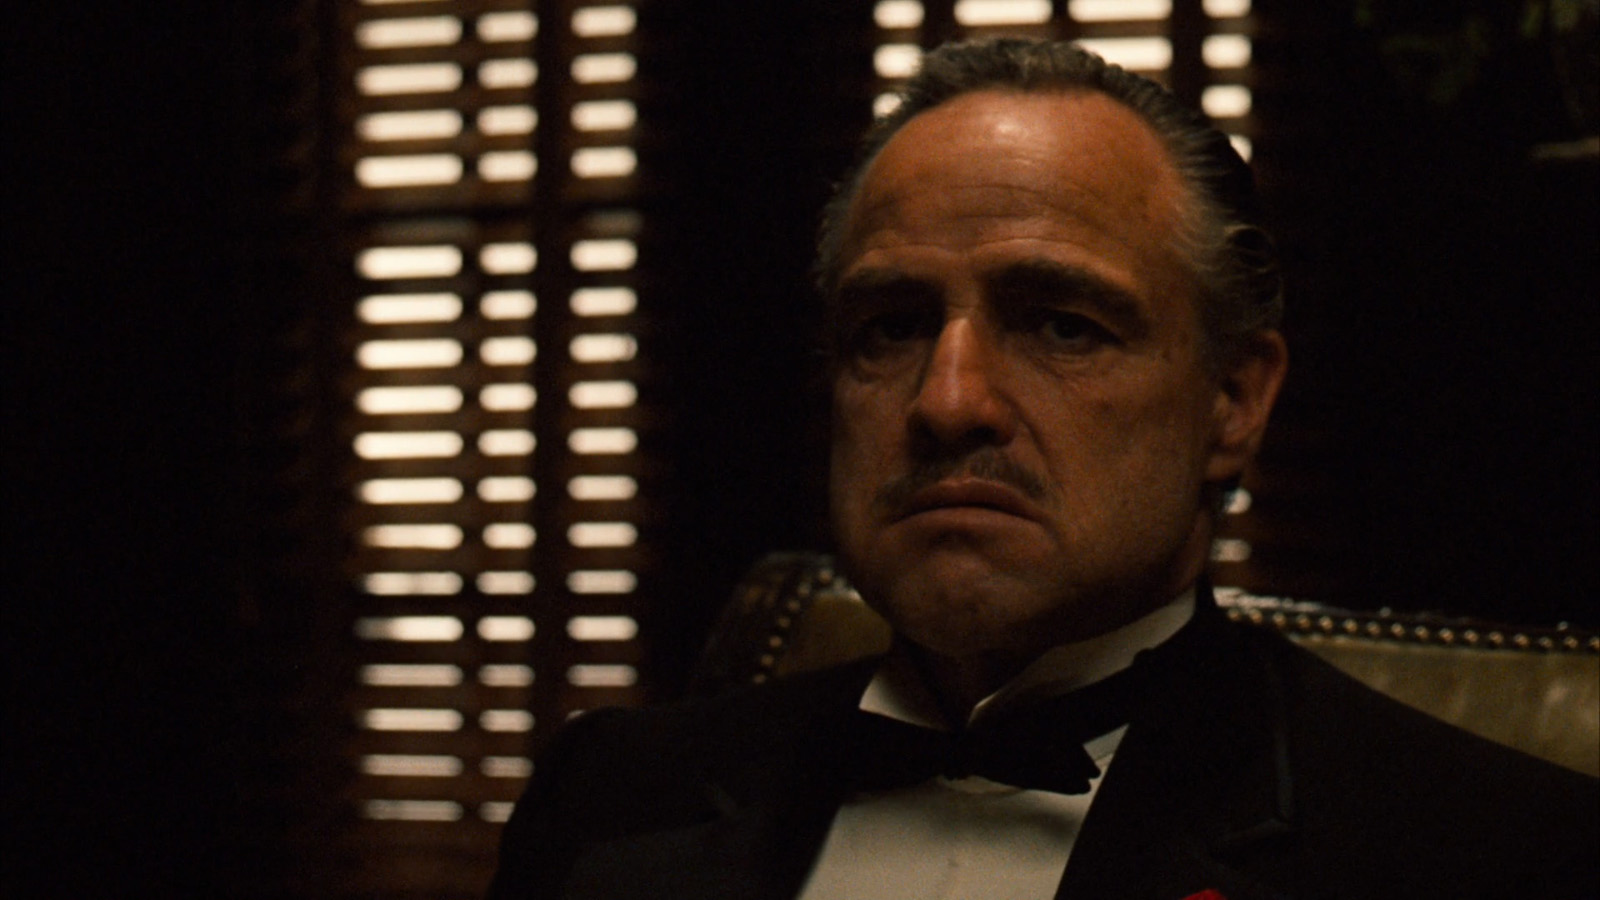 The Godfather played by Marlon Brando -Gordon Willis tribute -thefilmbook